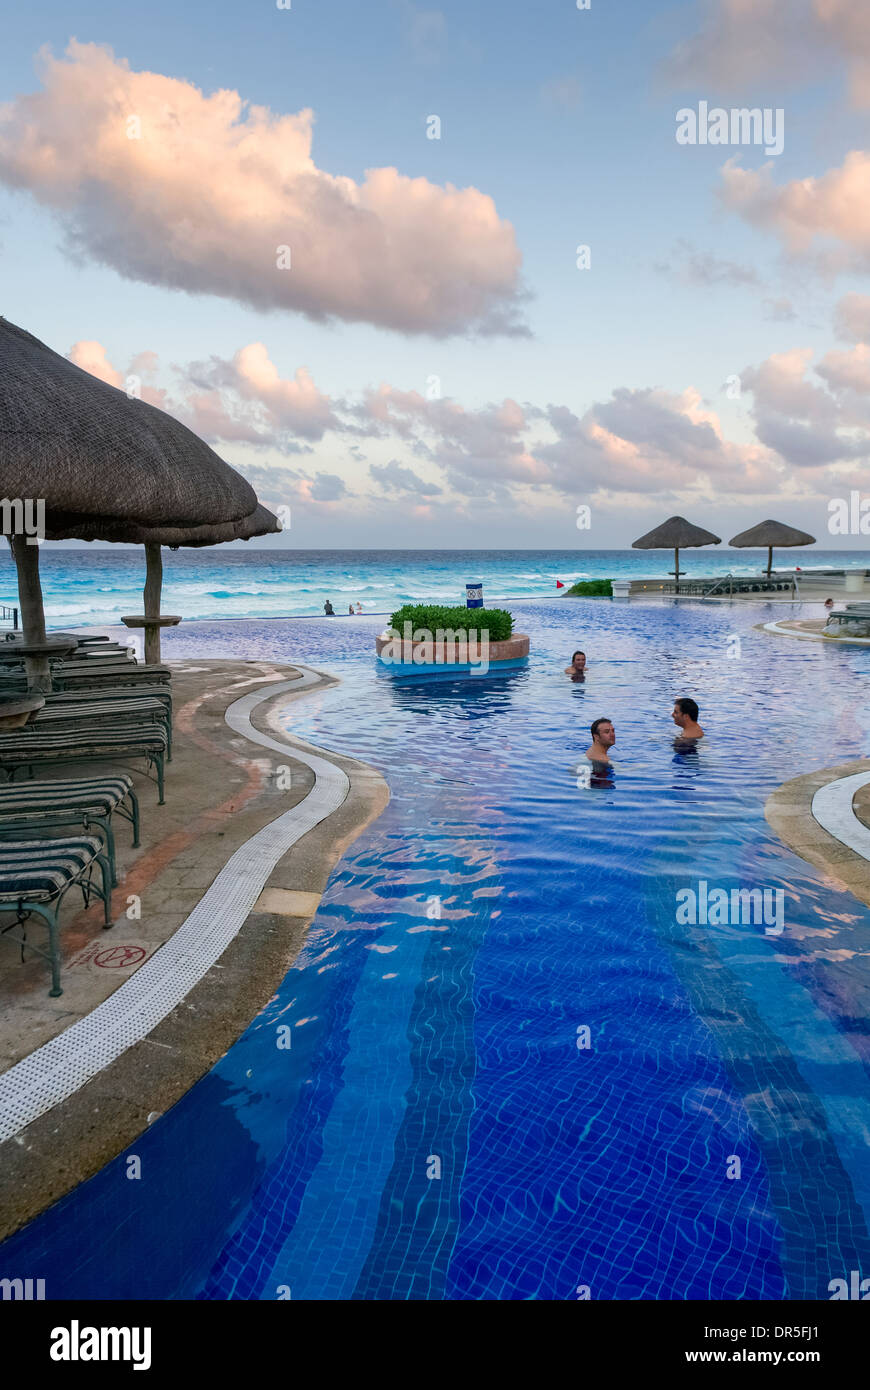 Camino Real Resort Cancun Hotel Mexico Stock Photos Hotel Mexico Stock Images Alamy